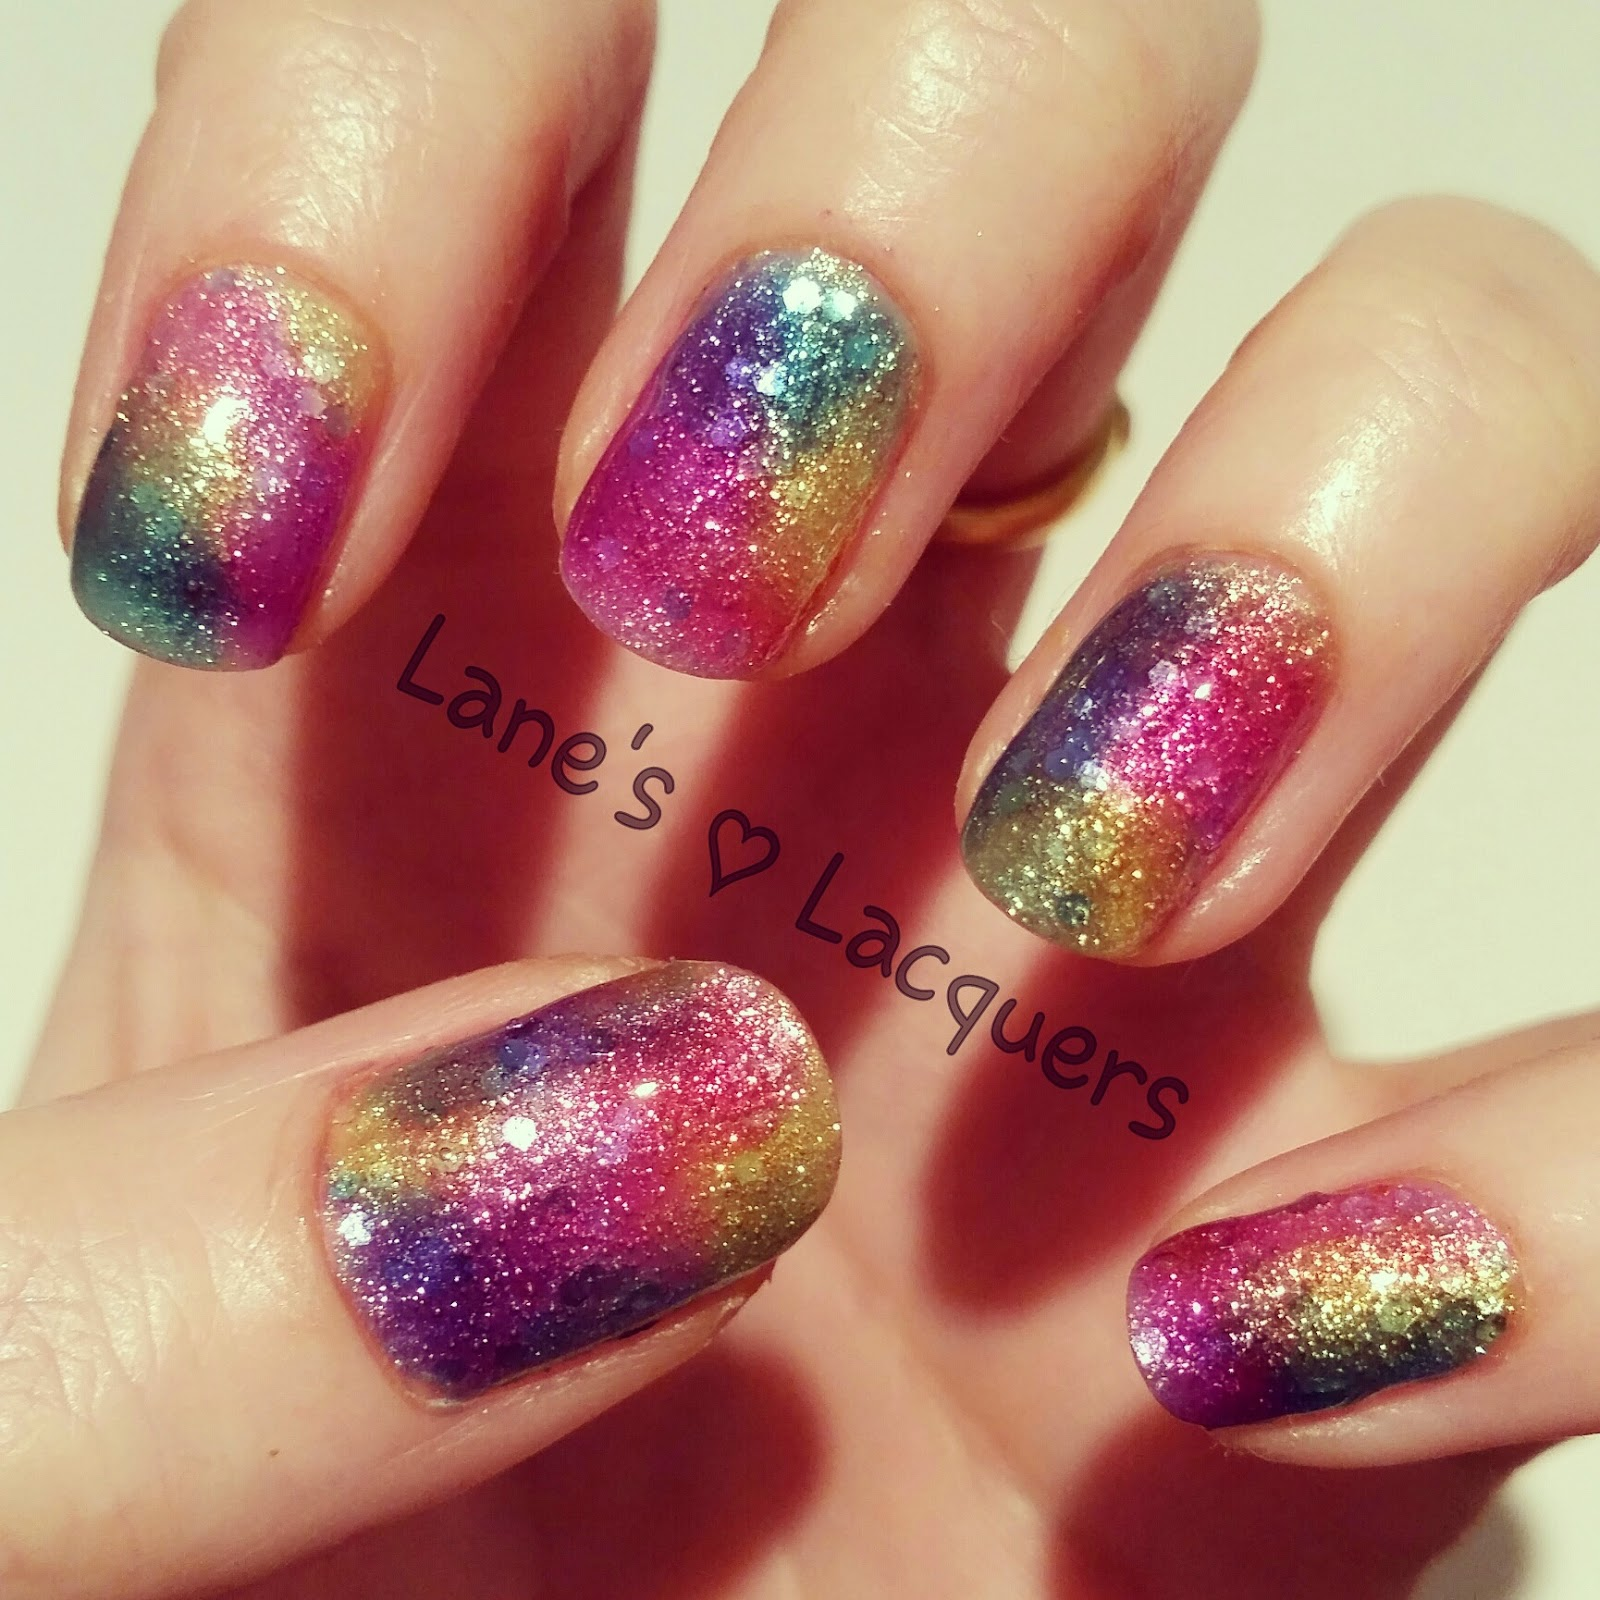 opi-sheer-tints-rainbow-blobbicure-over-glitter-base-nail-art